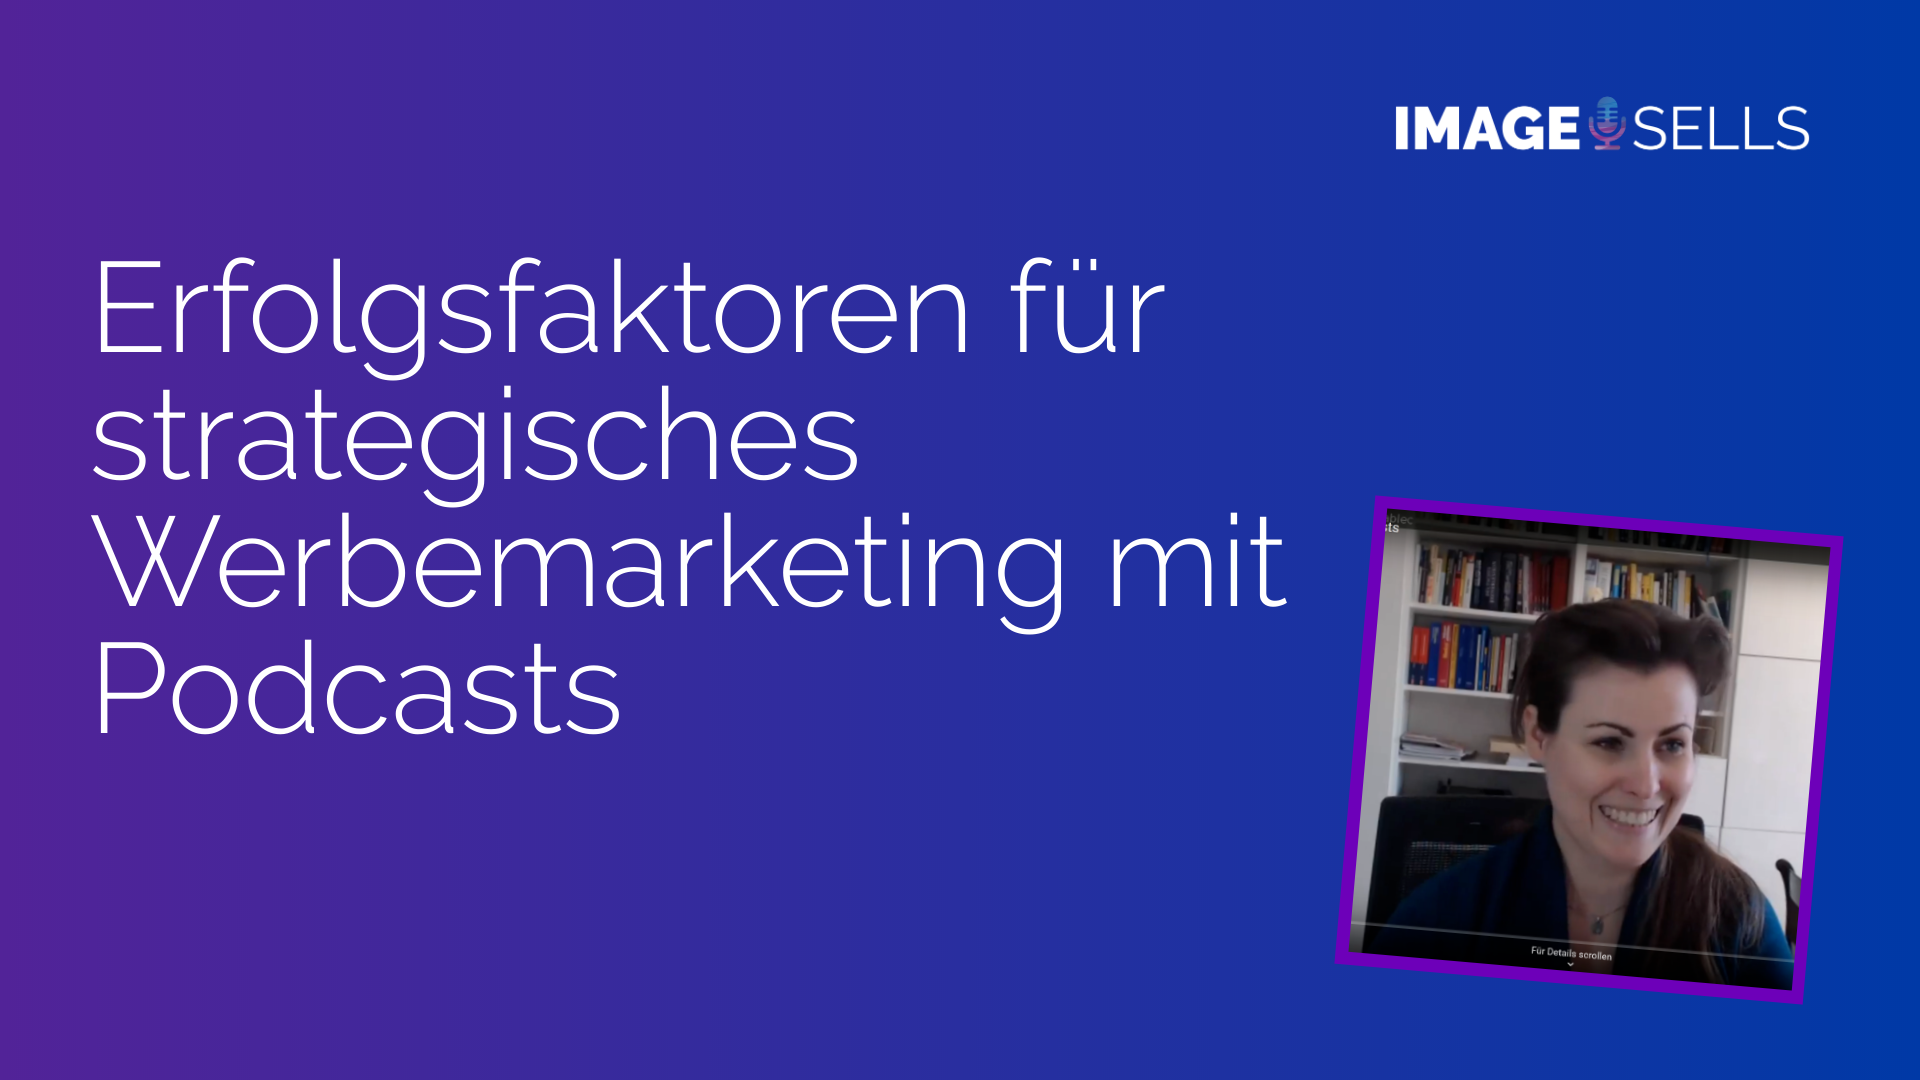 Wie funktioniert Werbemarketing in Podcasts